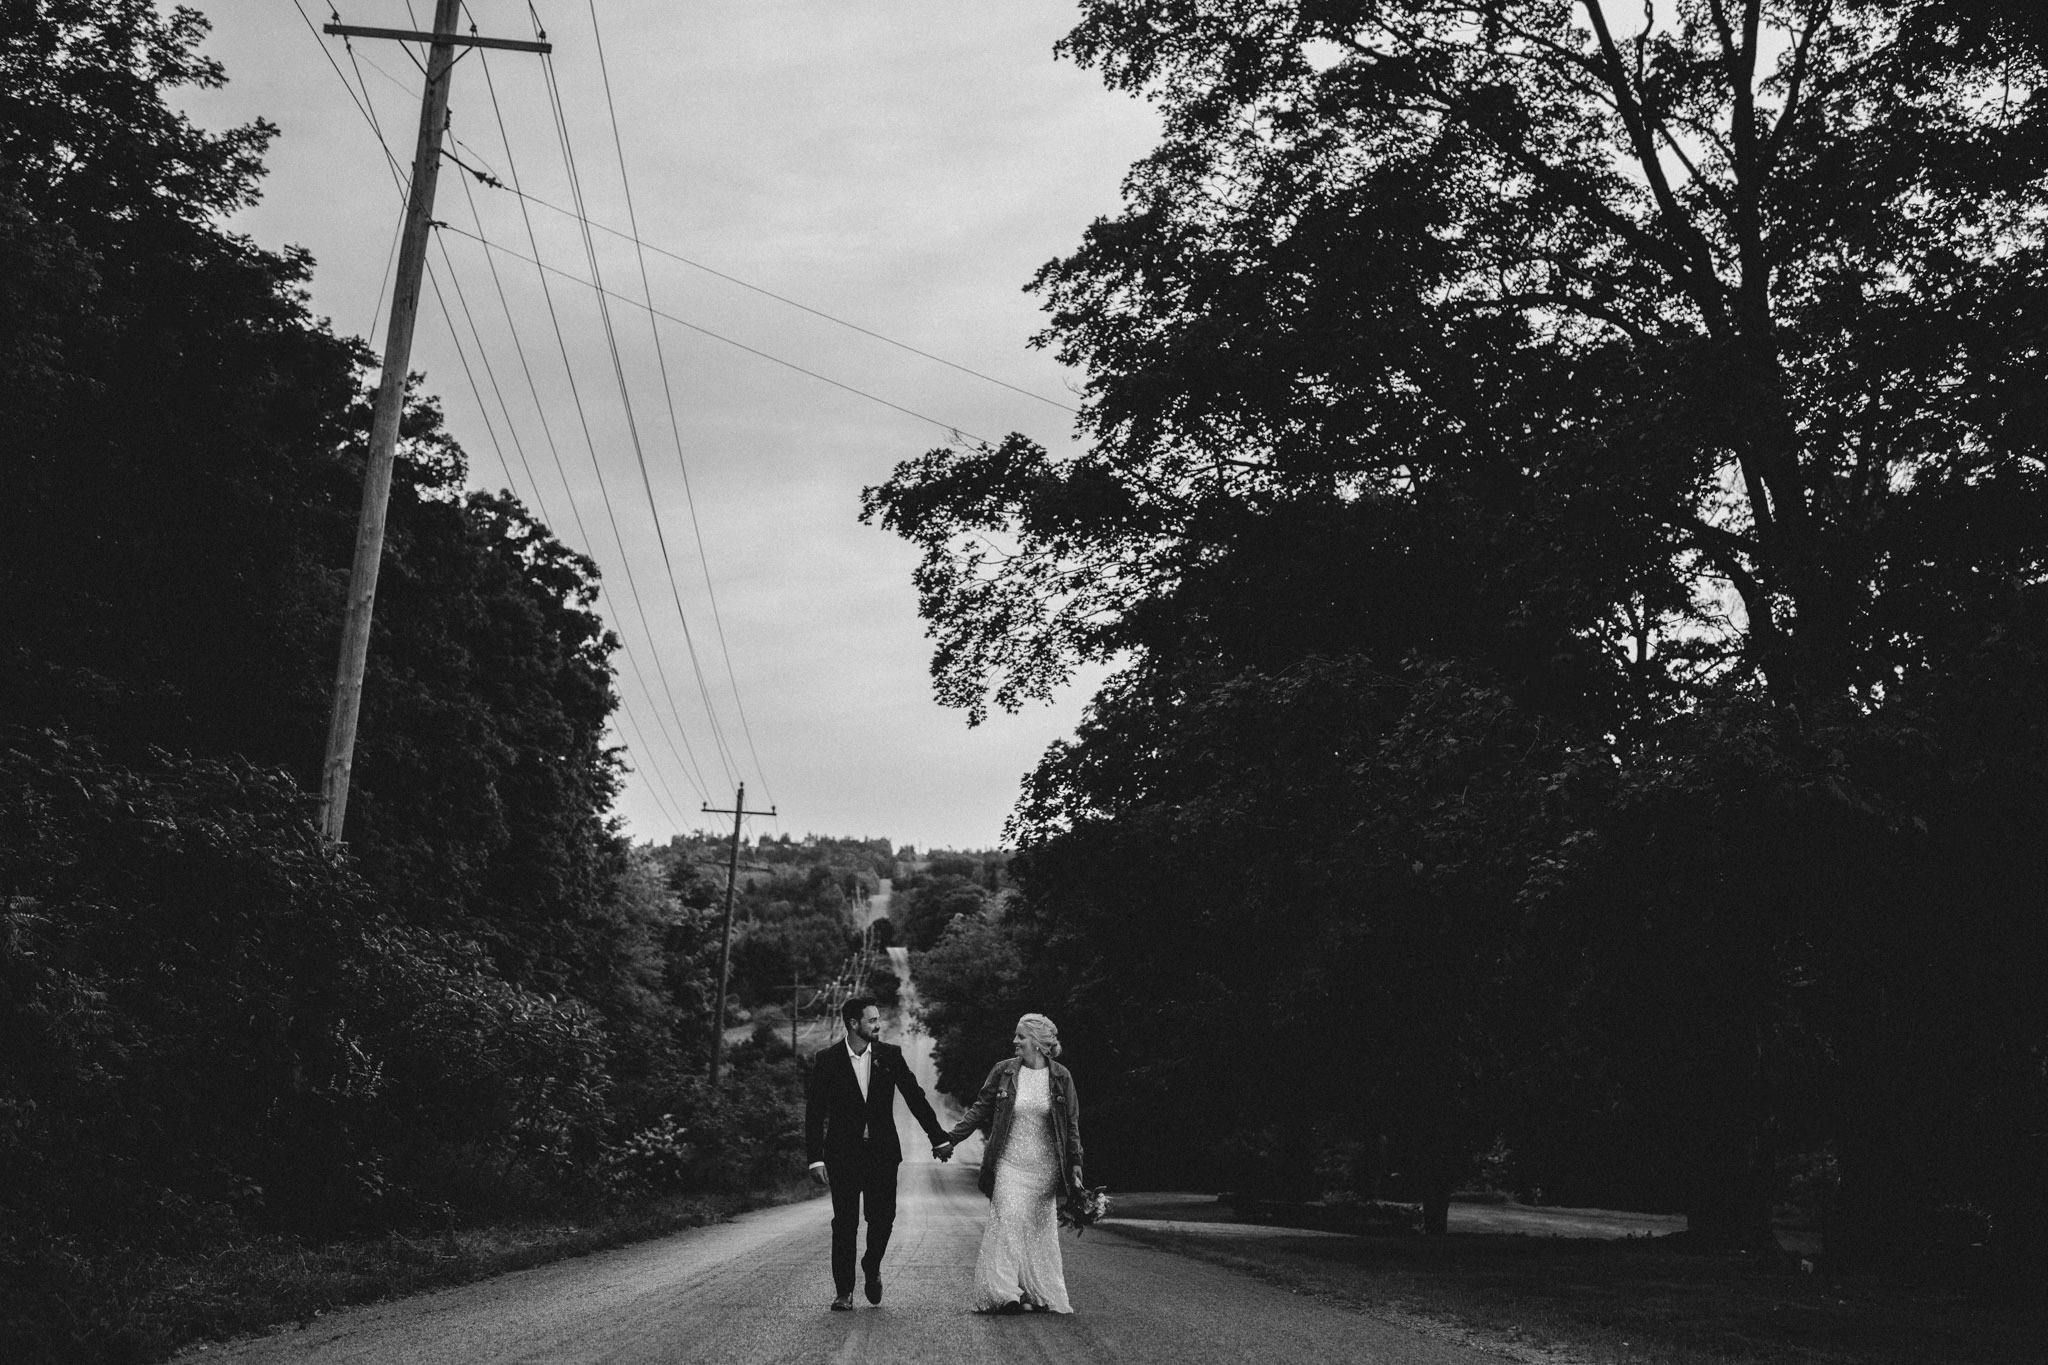 Century Barn Wedding Photographer - portraits on the country road